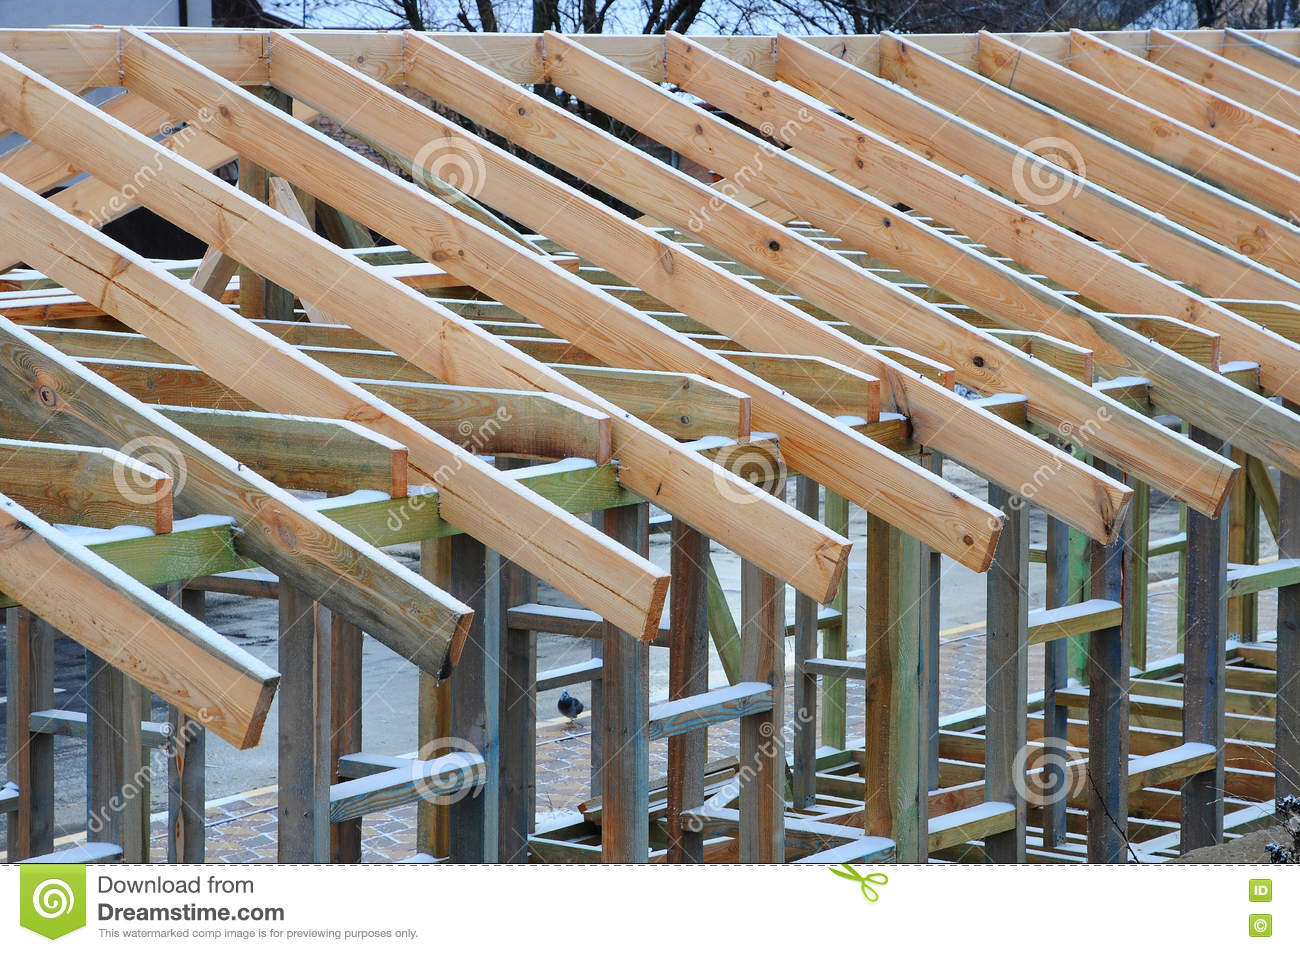 Installation of wooden beams at construction the roof for Roof trusses installation